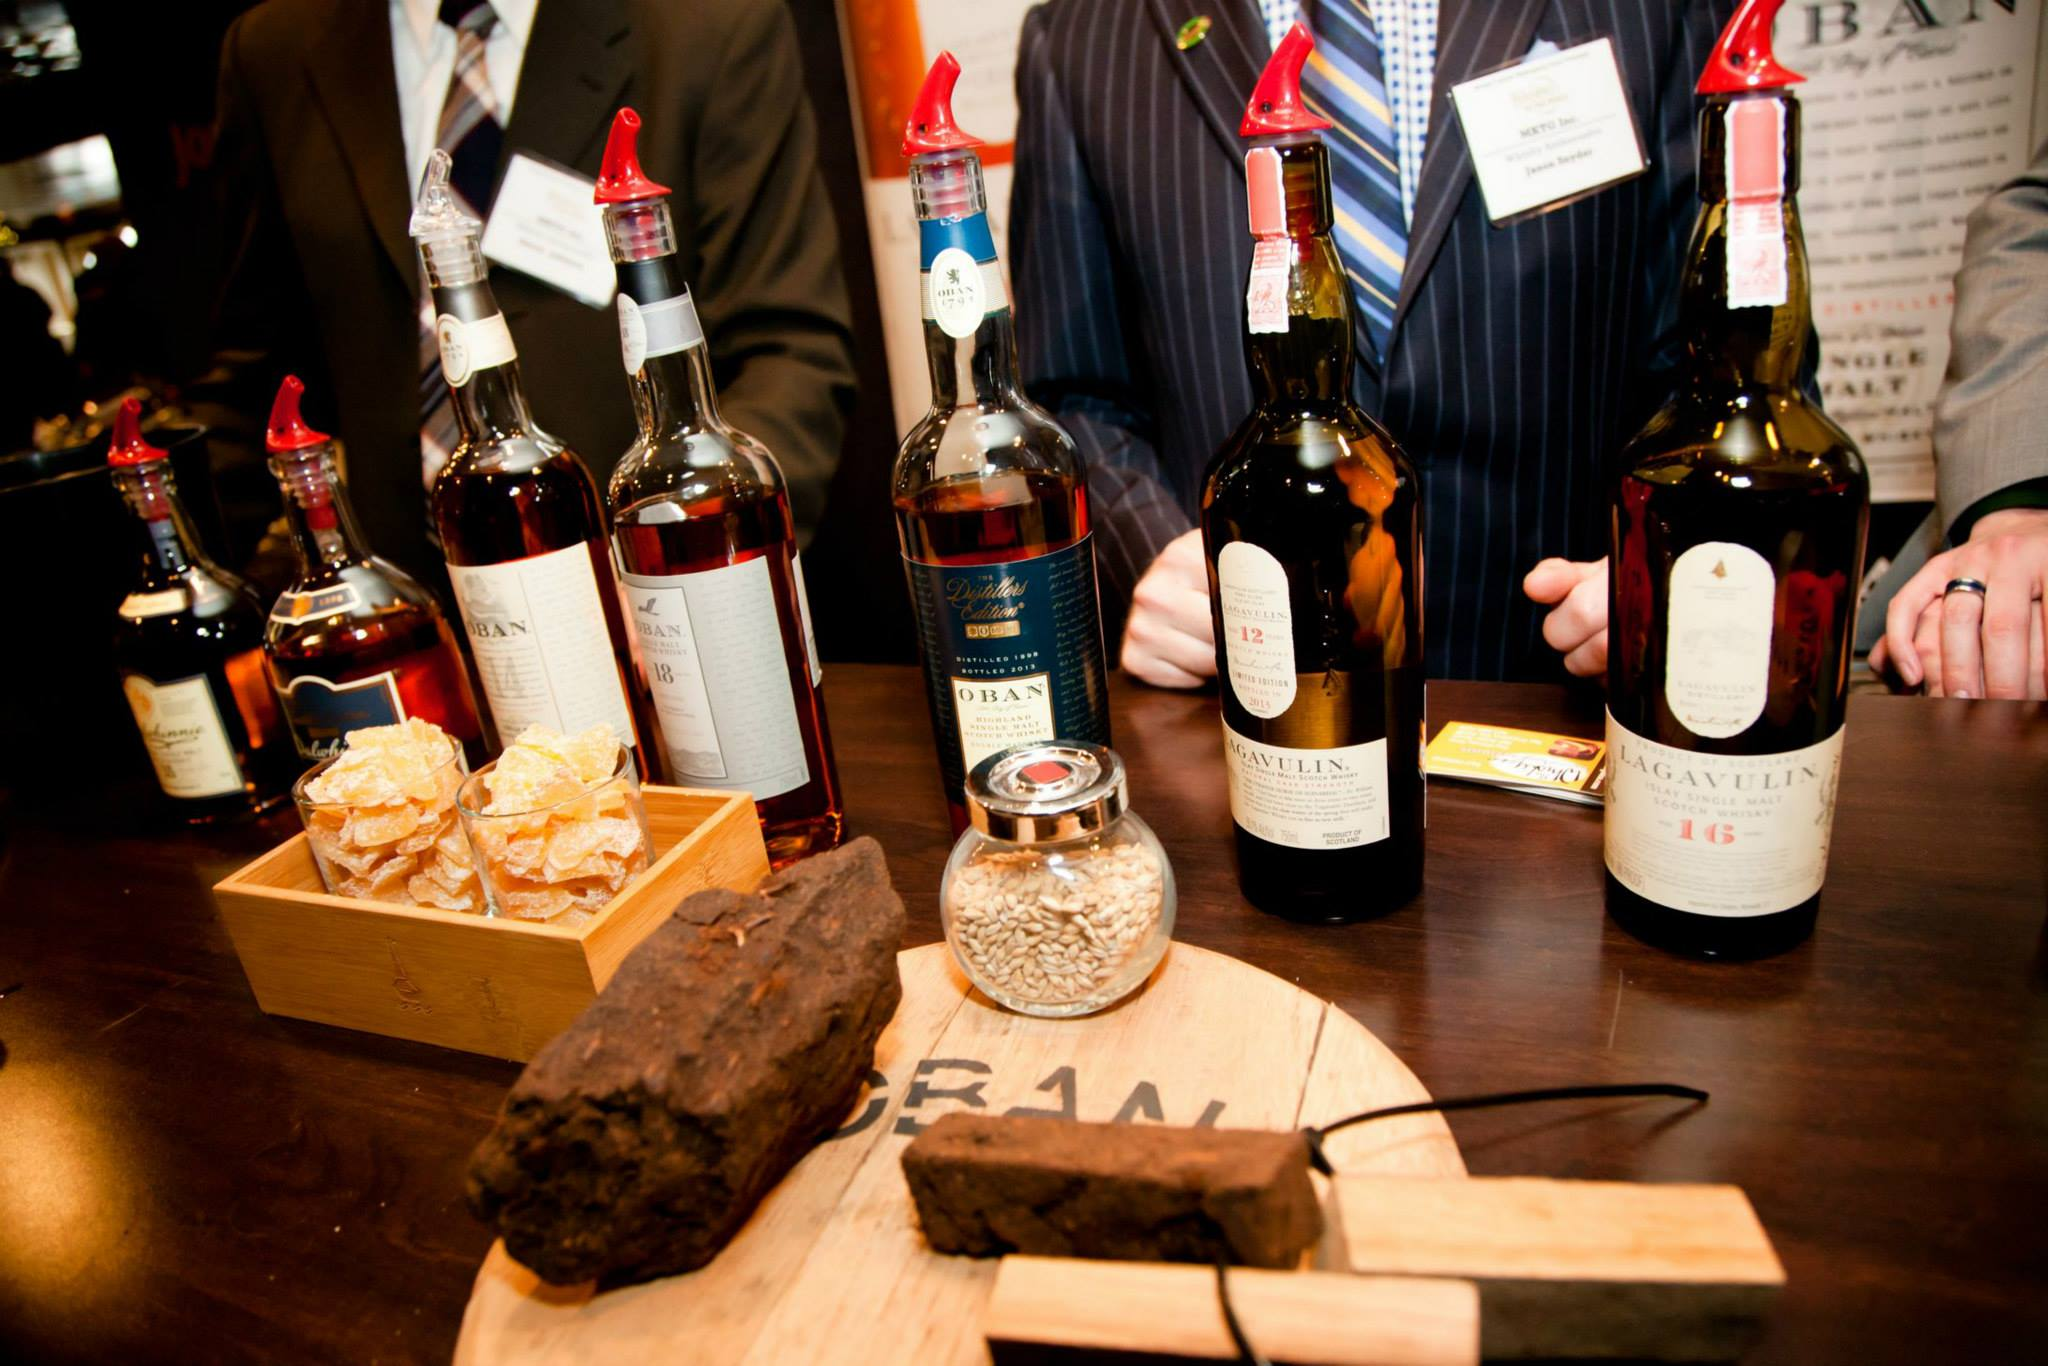 http://www.gafollowers.com/whiskies-world-returns-atlanta-2014/